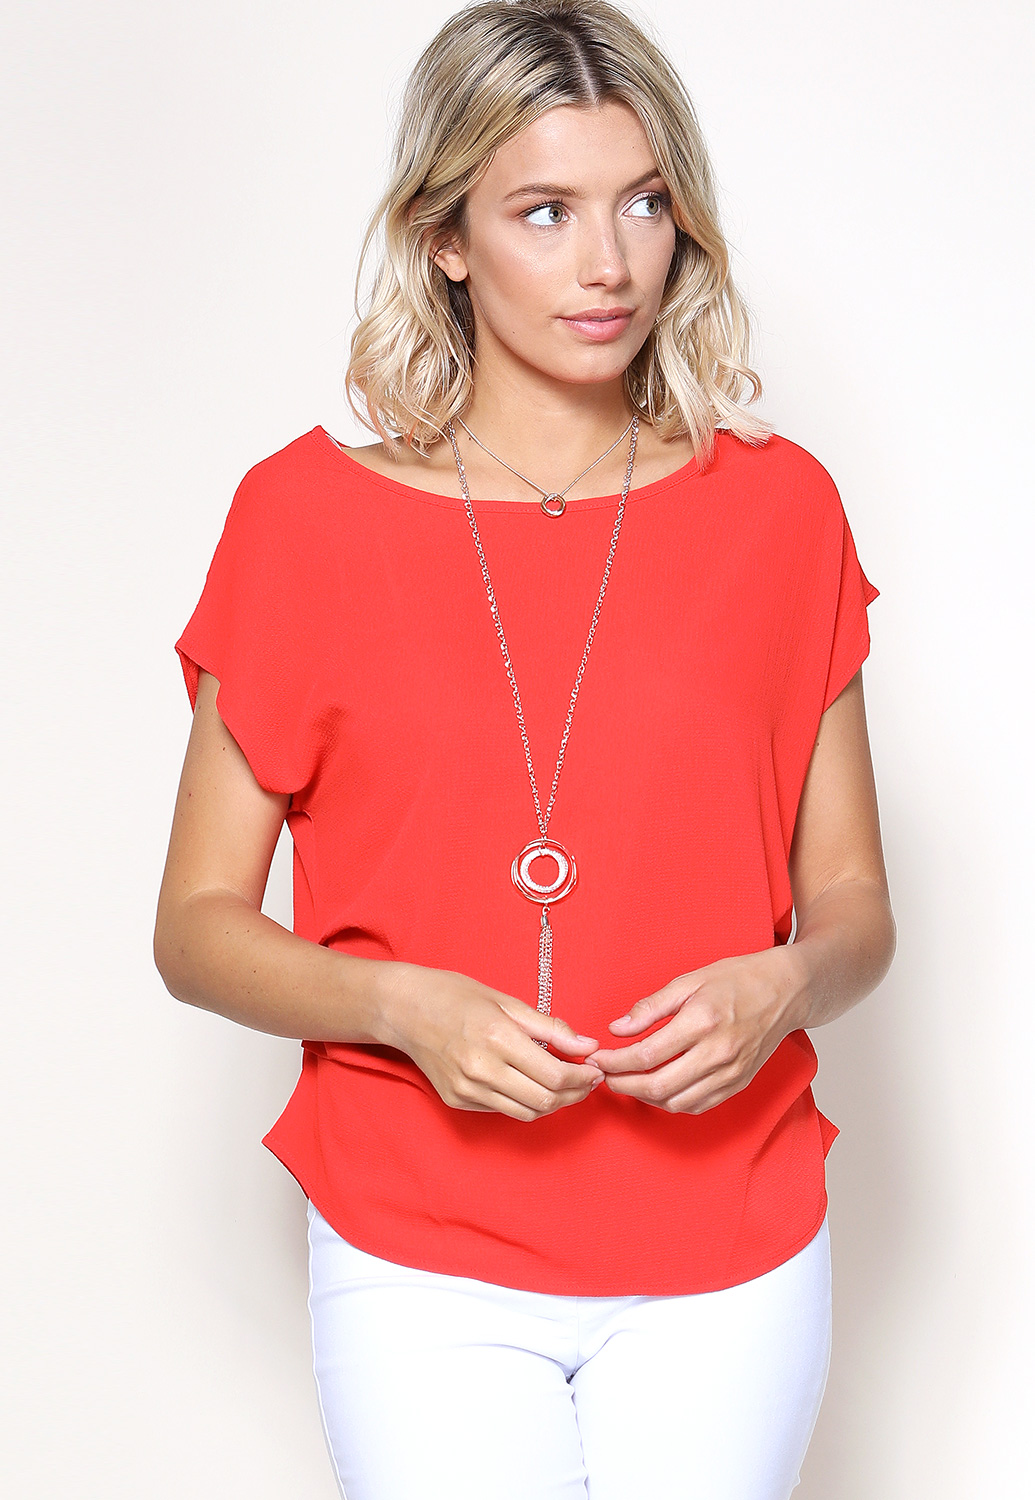 Ruffle Dressy Top W/Necklace